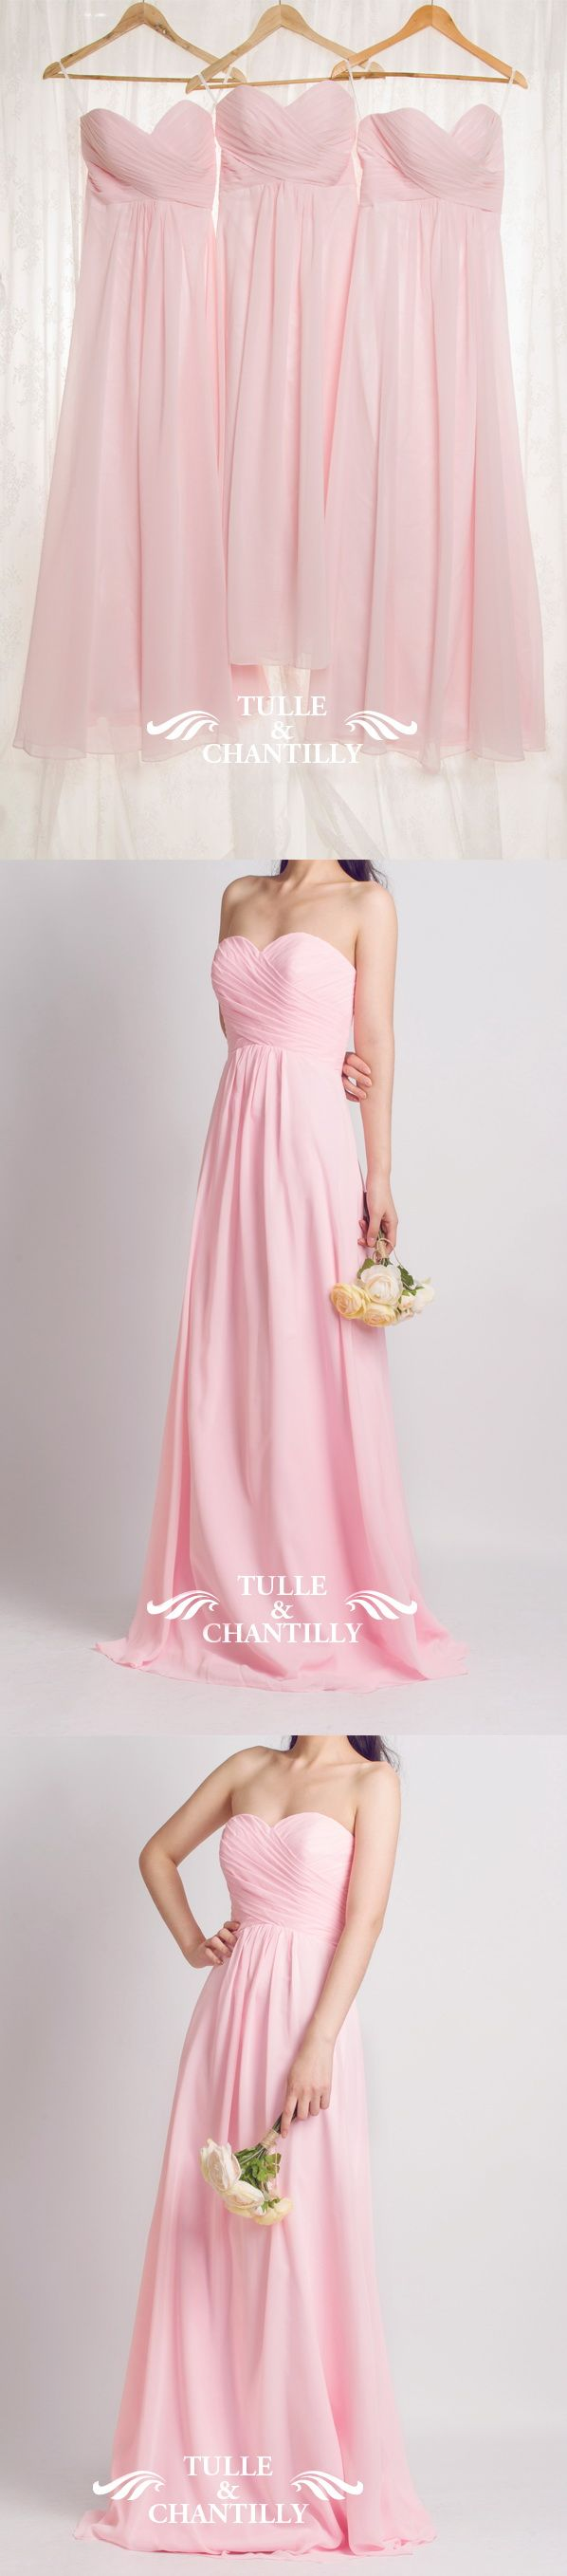 pink strapless bridesmaid dresses for spring summer weddings | Des ...